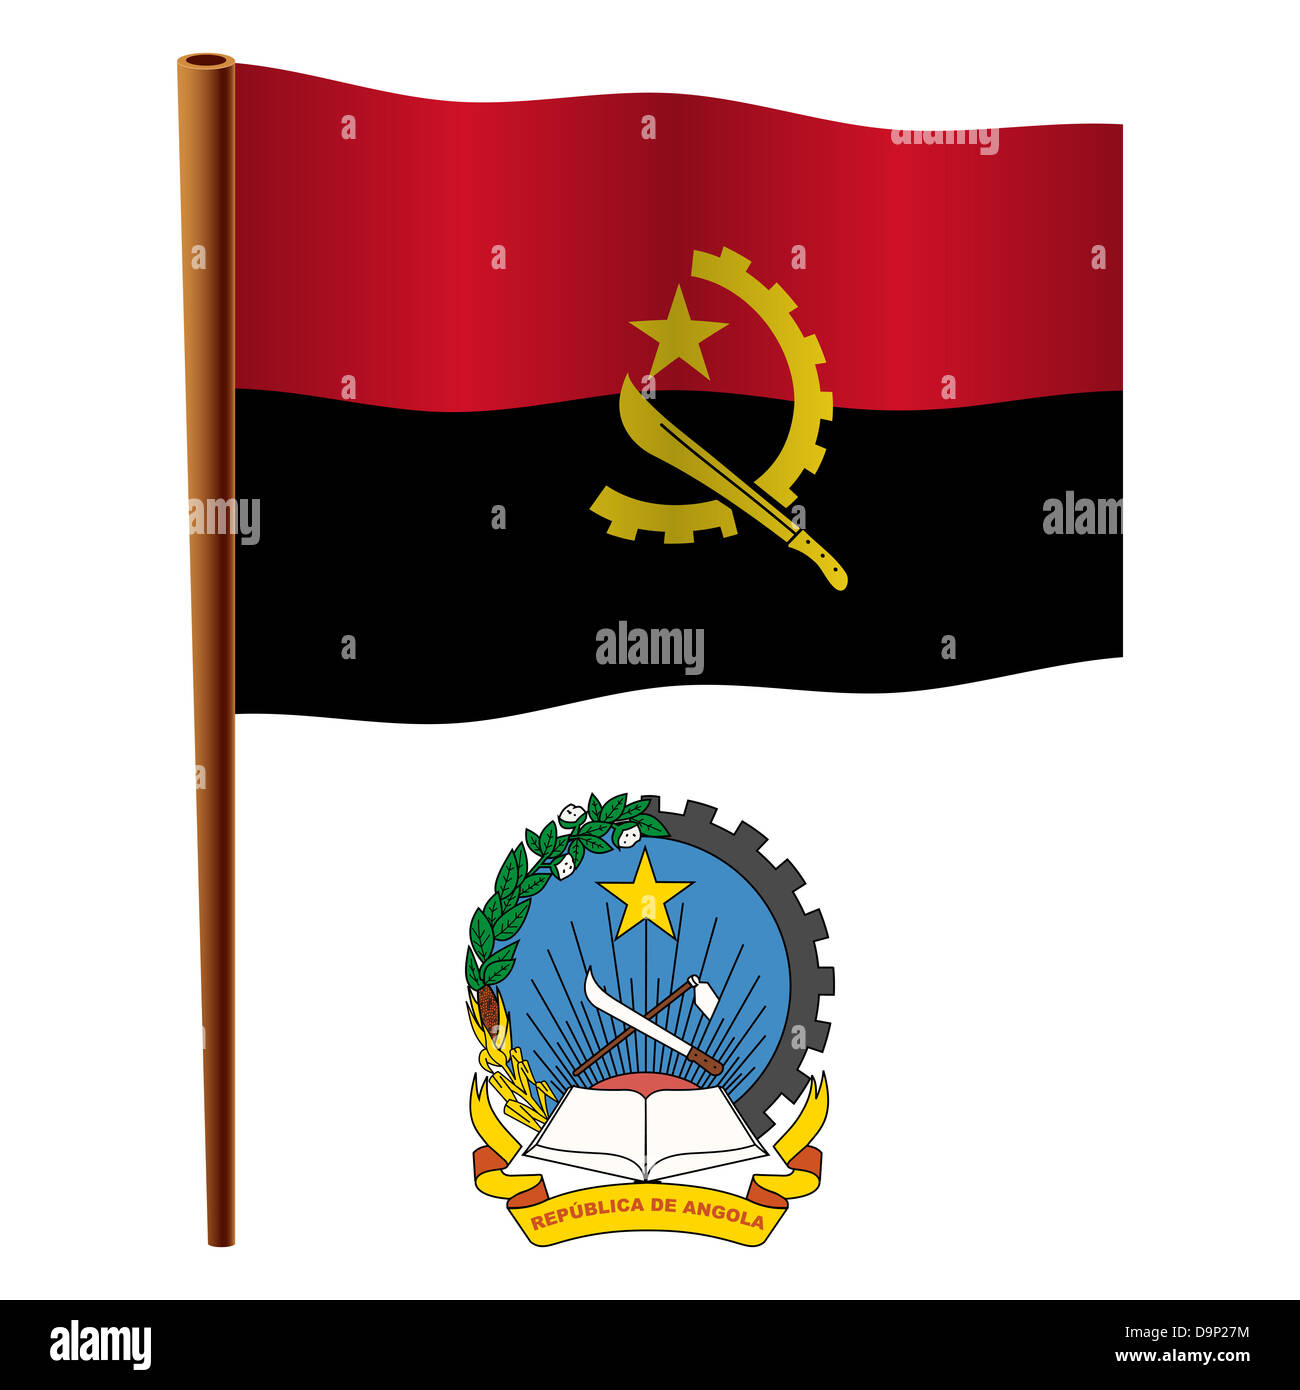 angola wavy flag and coat of arms against white background, vector art illustration, image contains transparency - Stock Image